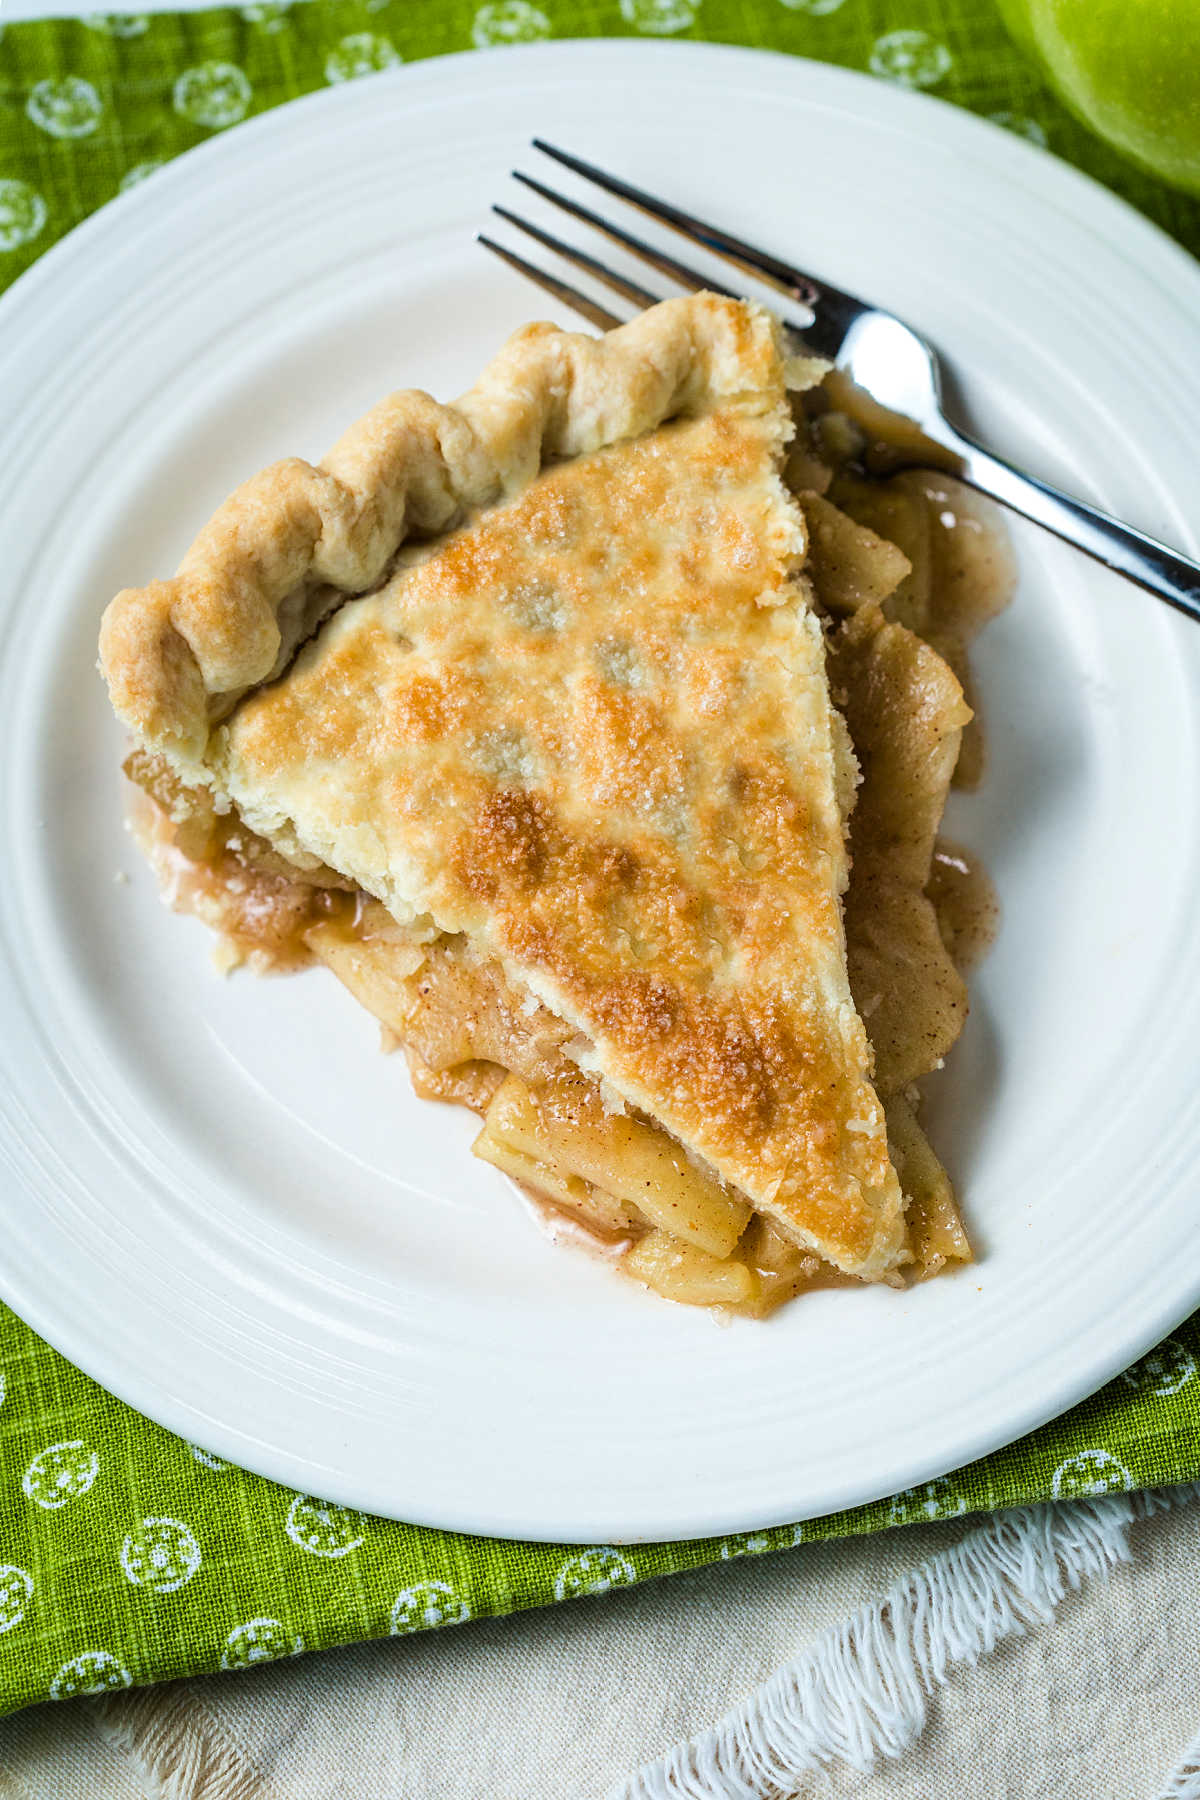 top down view of a slice of apple pie on a white plate with a fork on top of a green napkin.